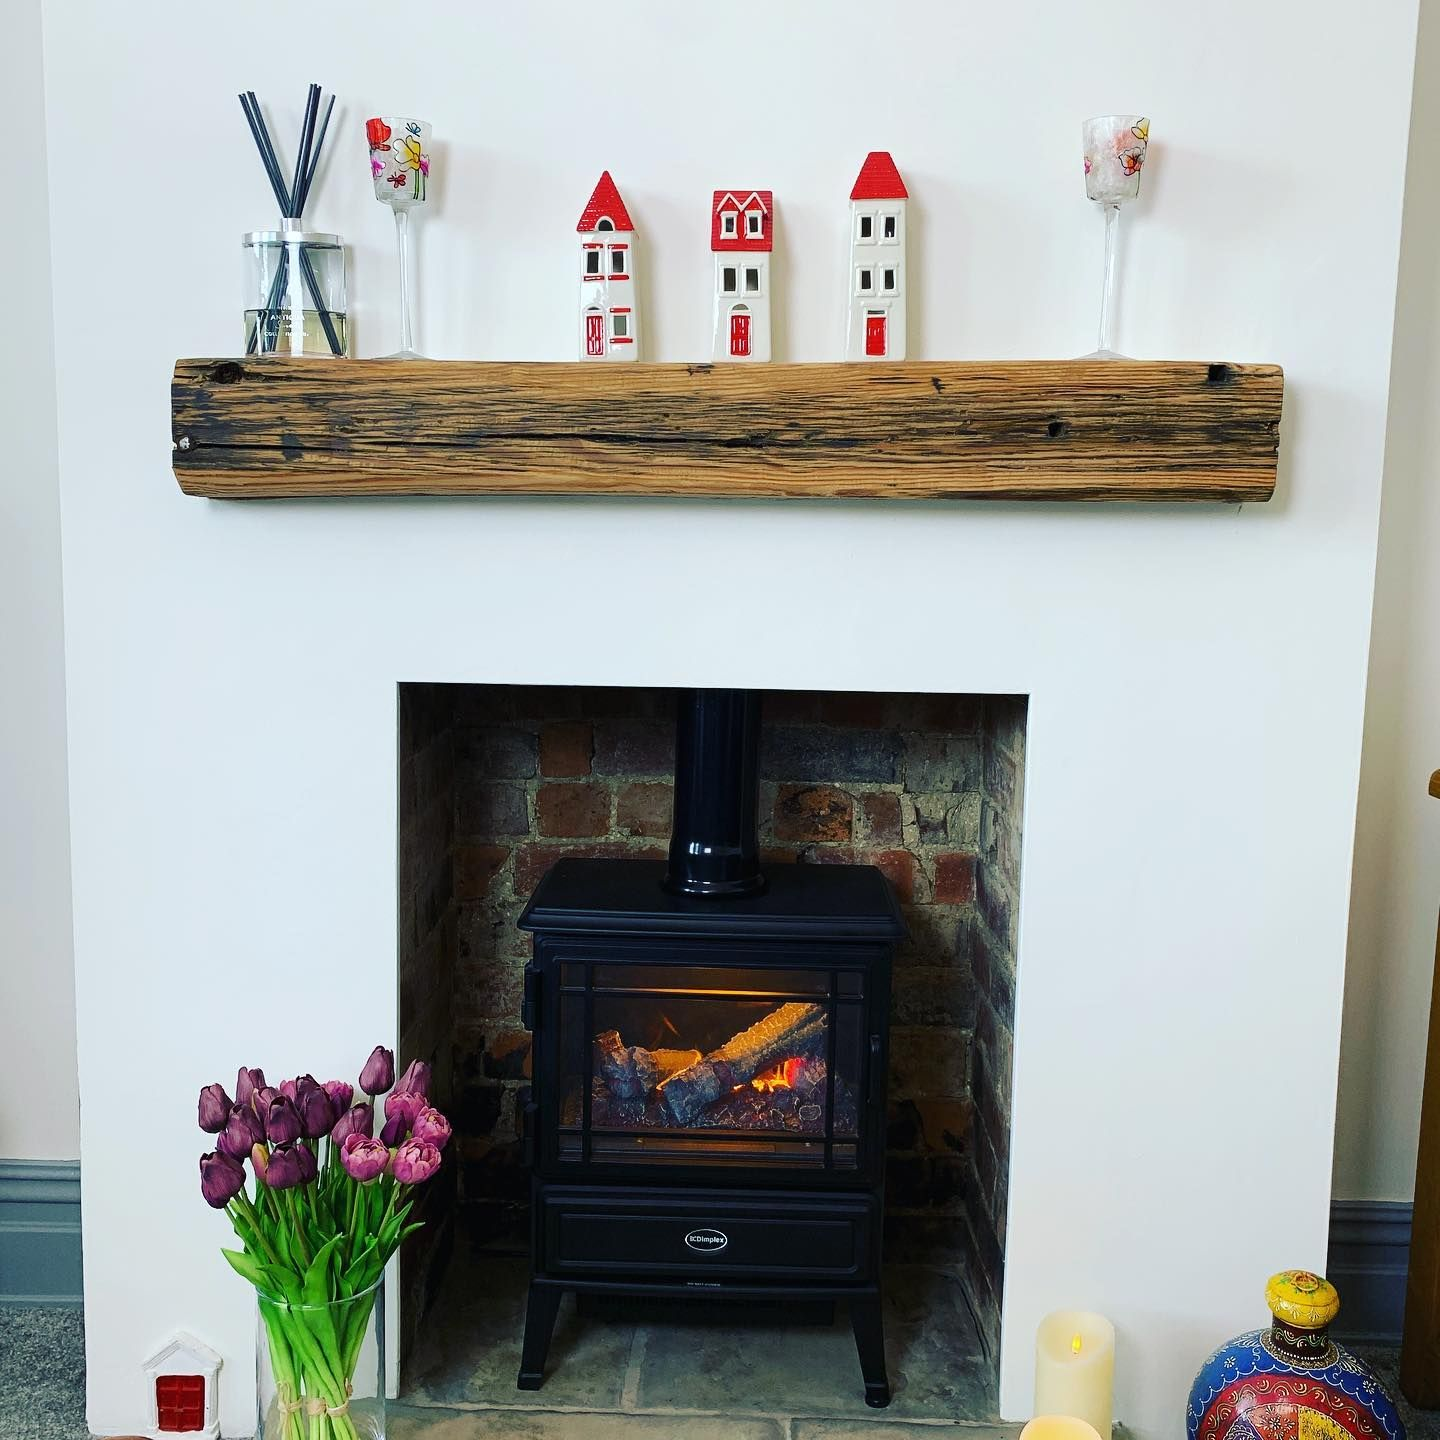 Our Take on the Old Rustic Fireplace Reclaimed Oak Beam